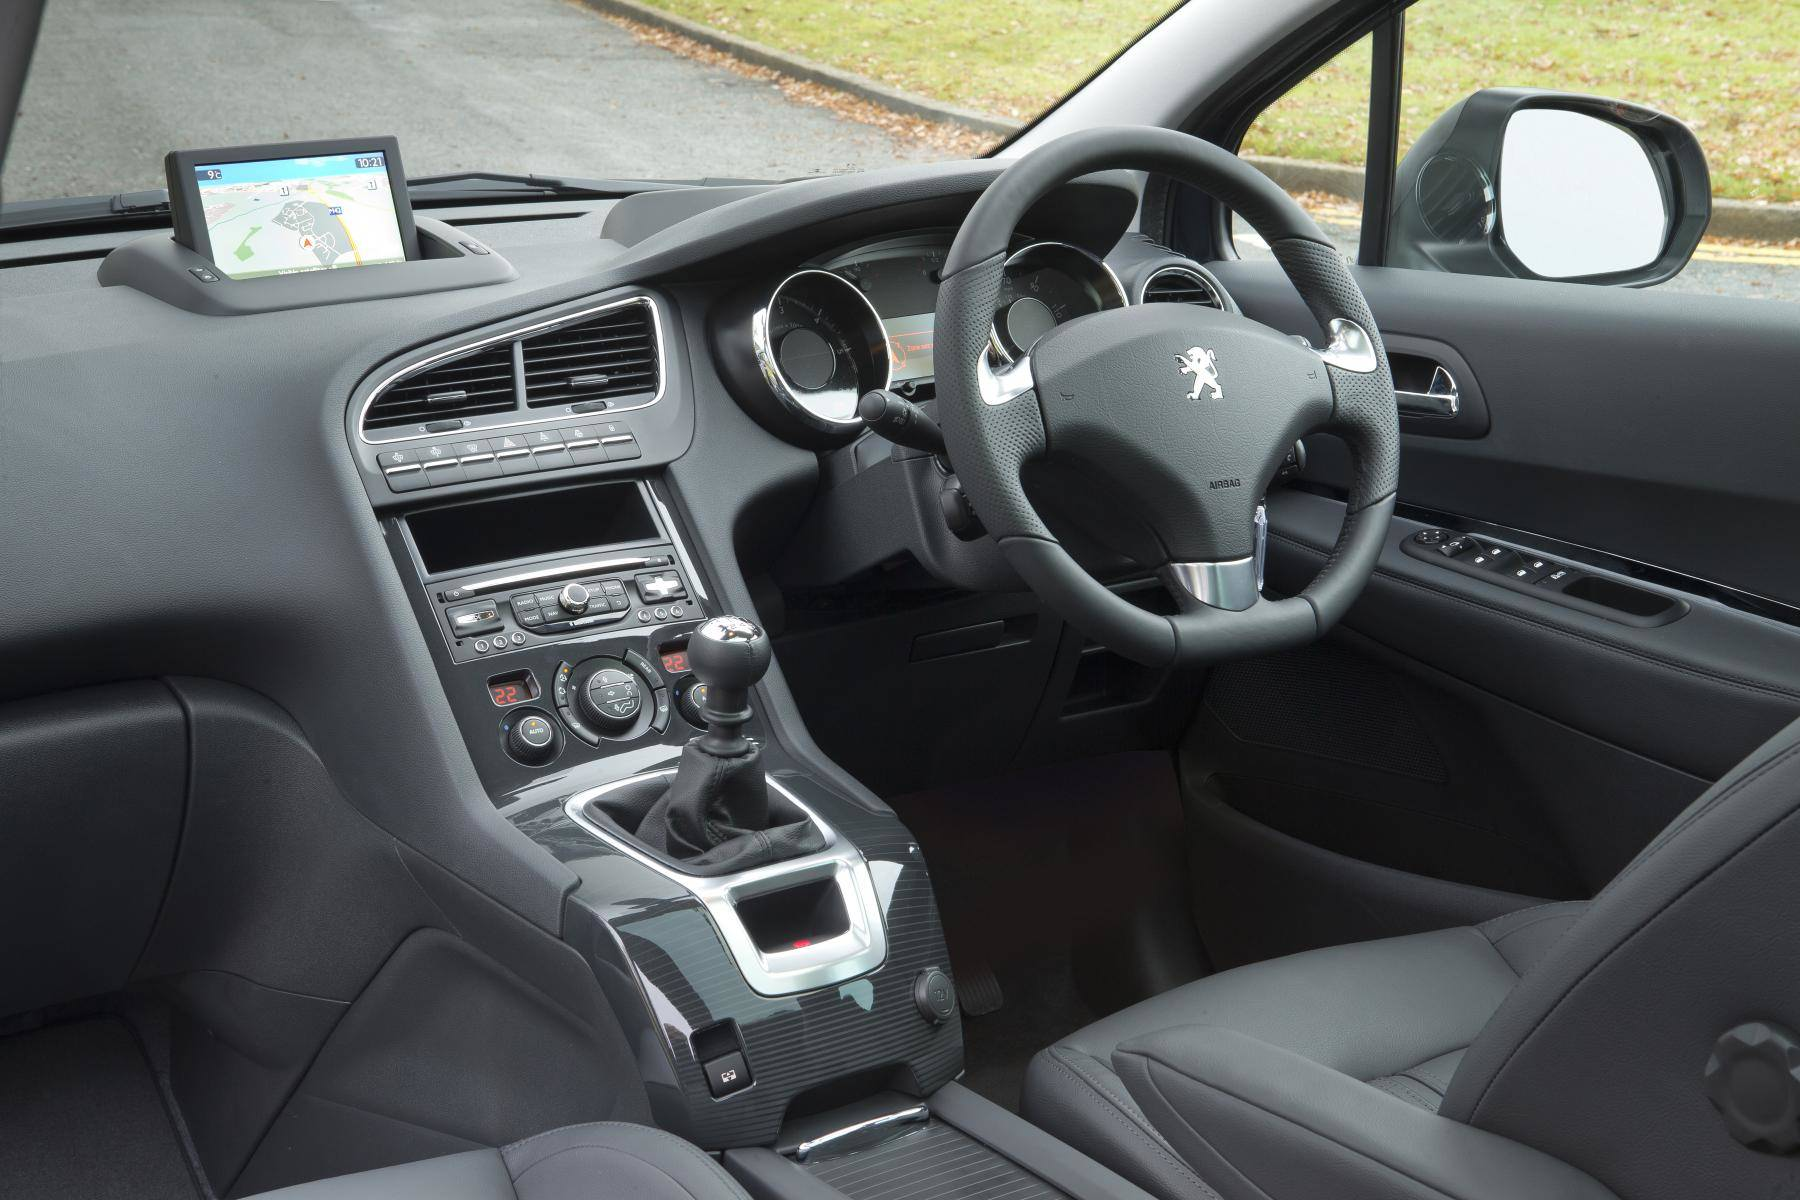 image of a peugeot 5008 car interior